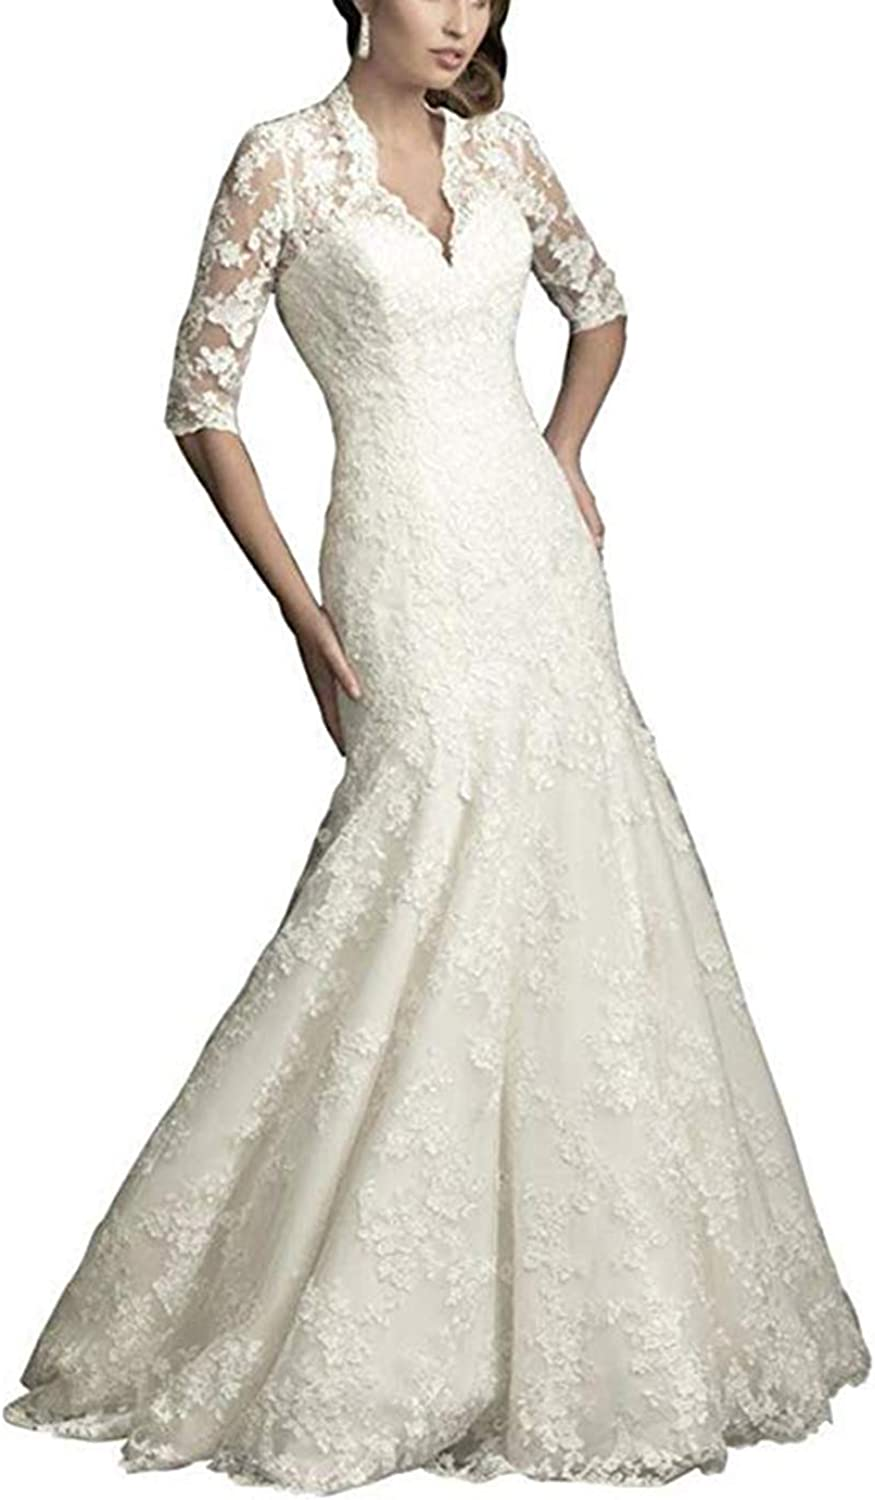 Women's VNeck Mermaid Lace Wedding Dresses for Bride 1 2 Sleeves Church Garden Princess Bridal Dresses Train